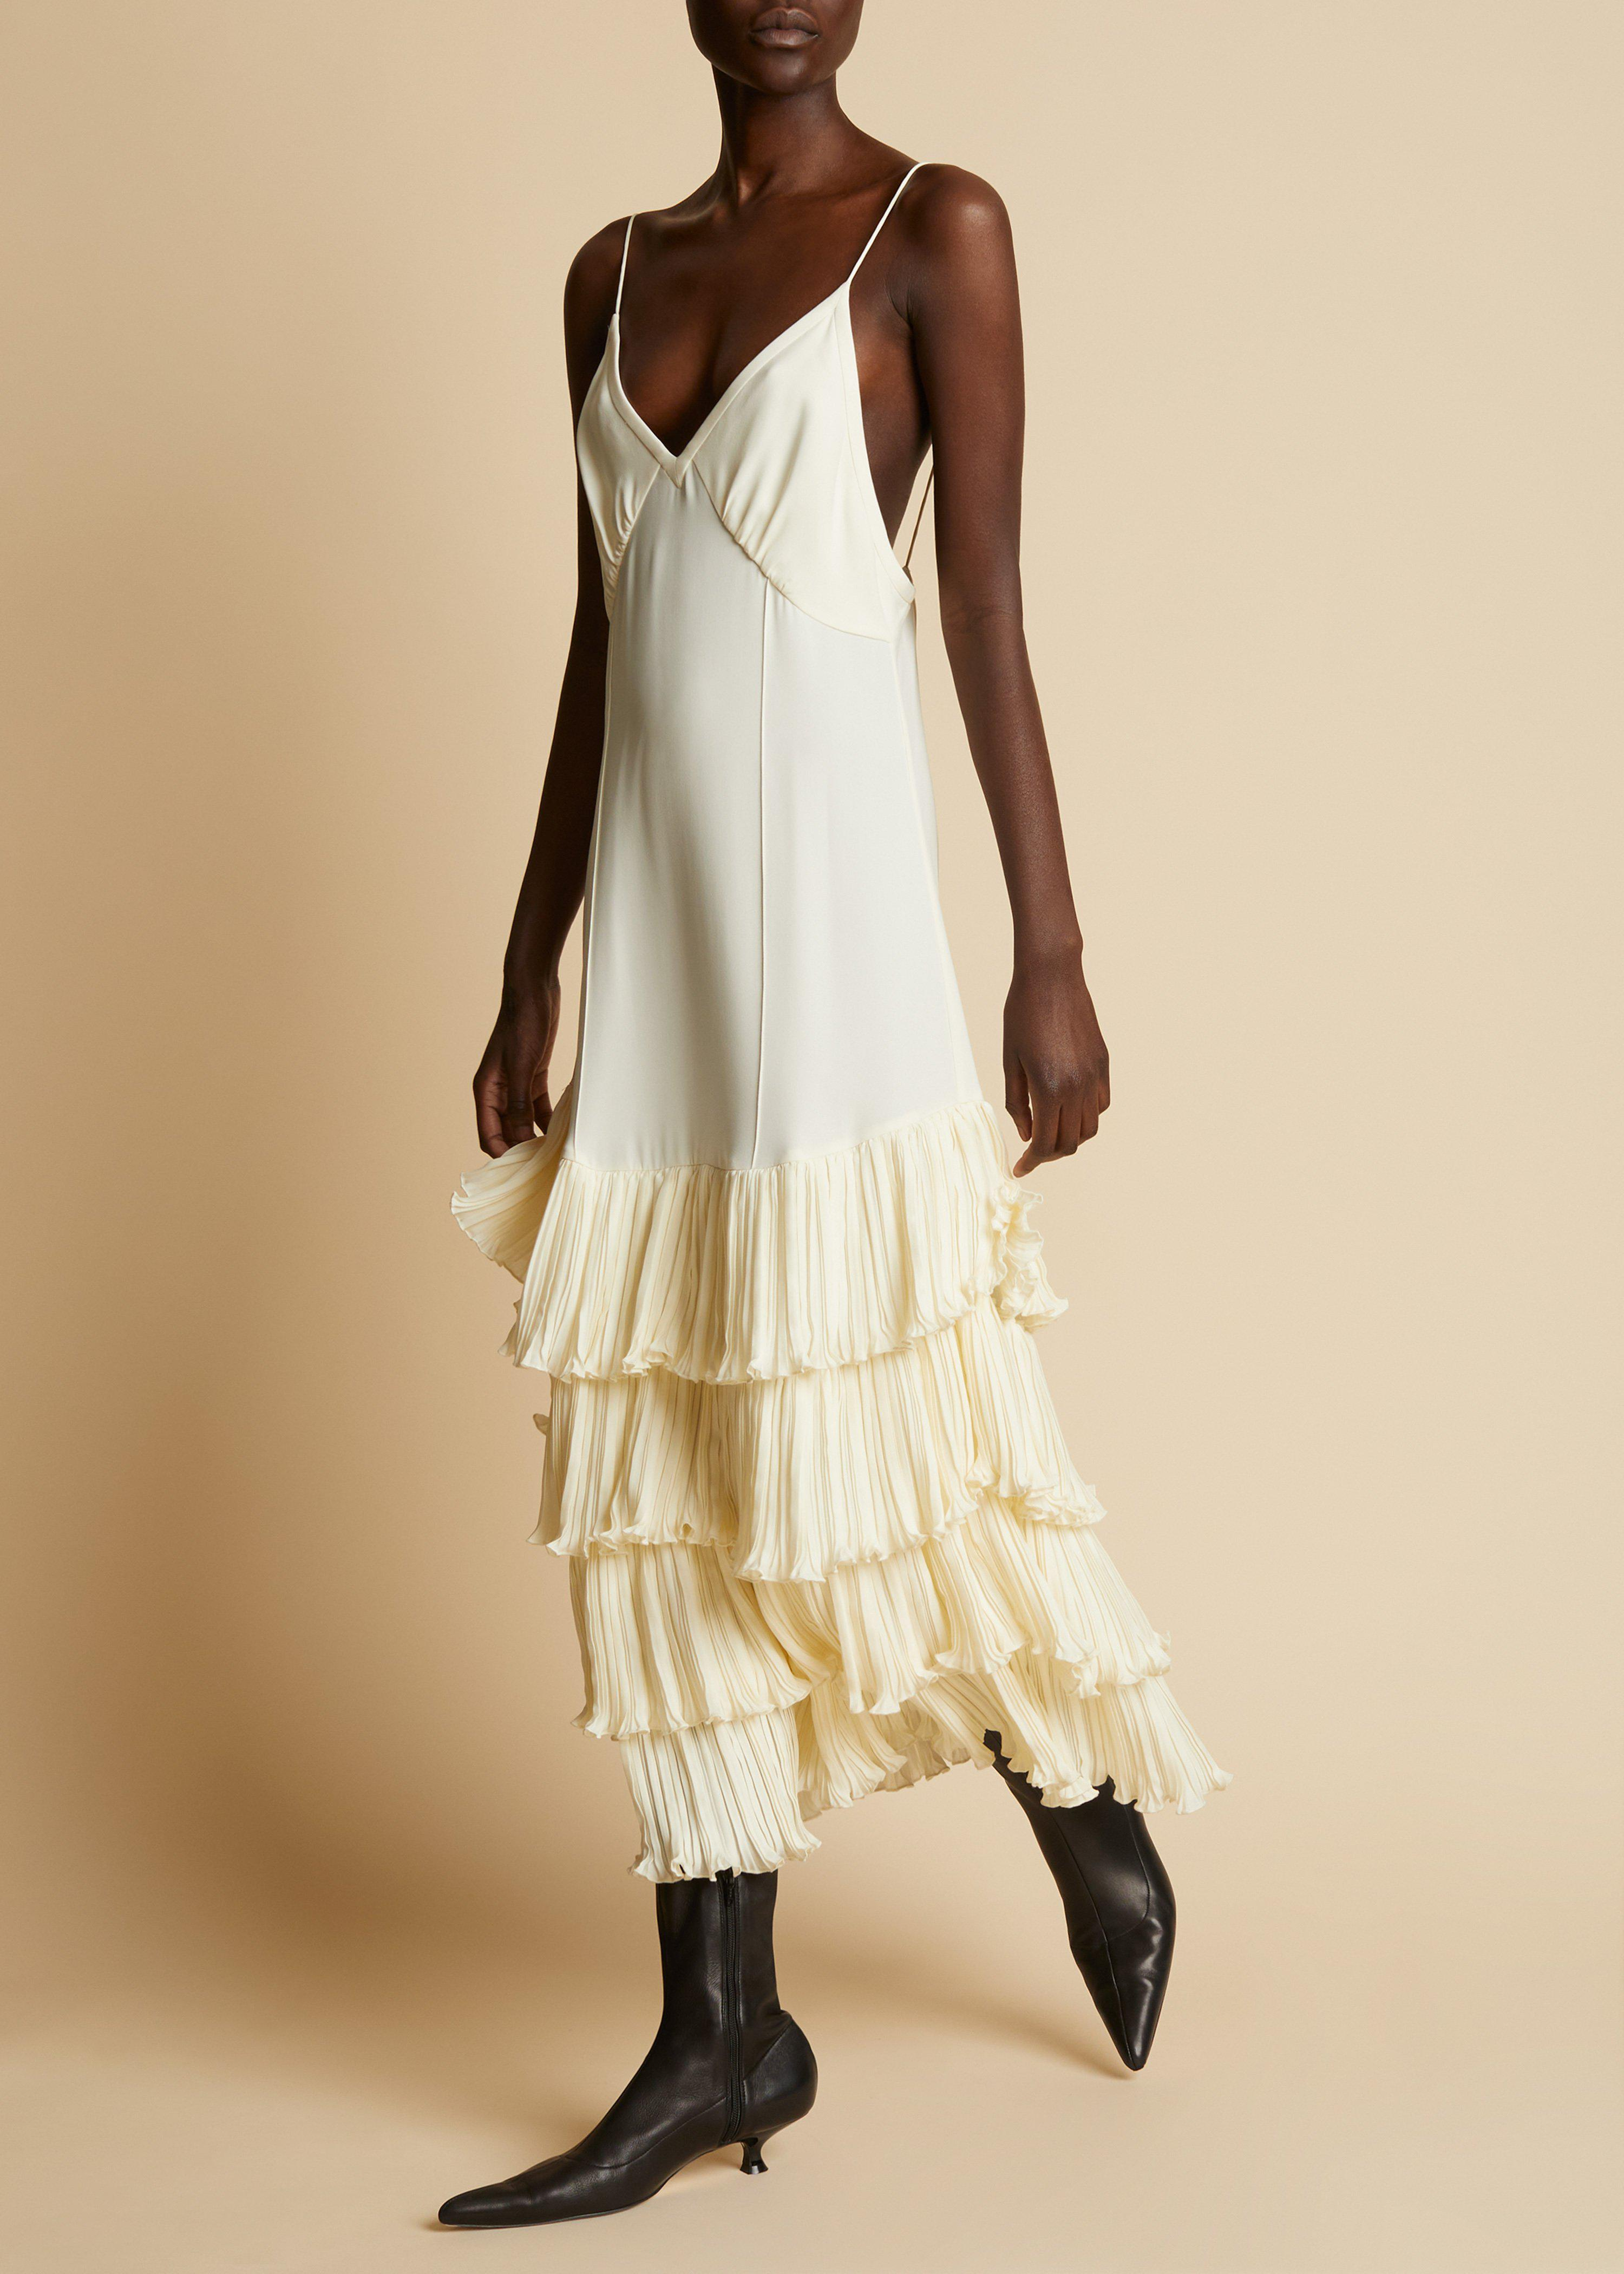 The Myrtle Dress in Ivory